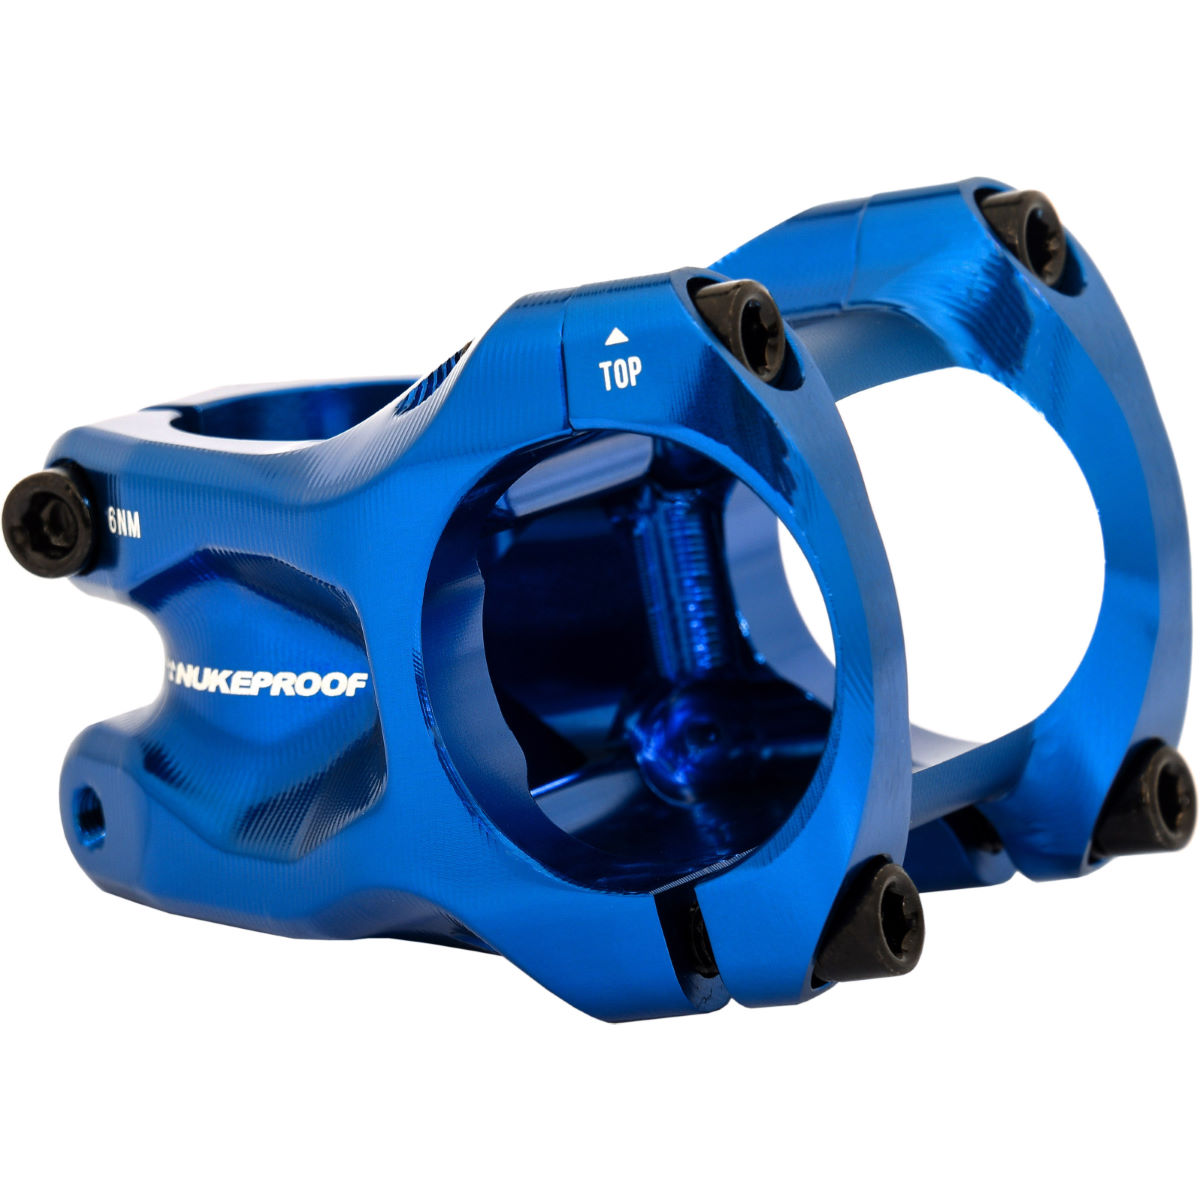 Nukeproof Nukeproof Horizon Stem   Stems